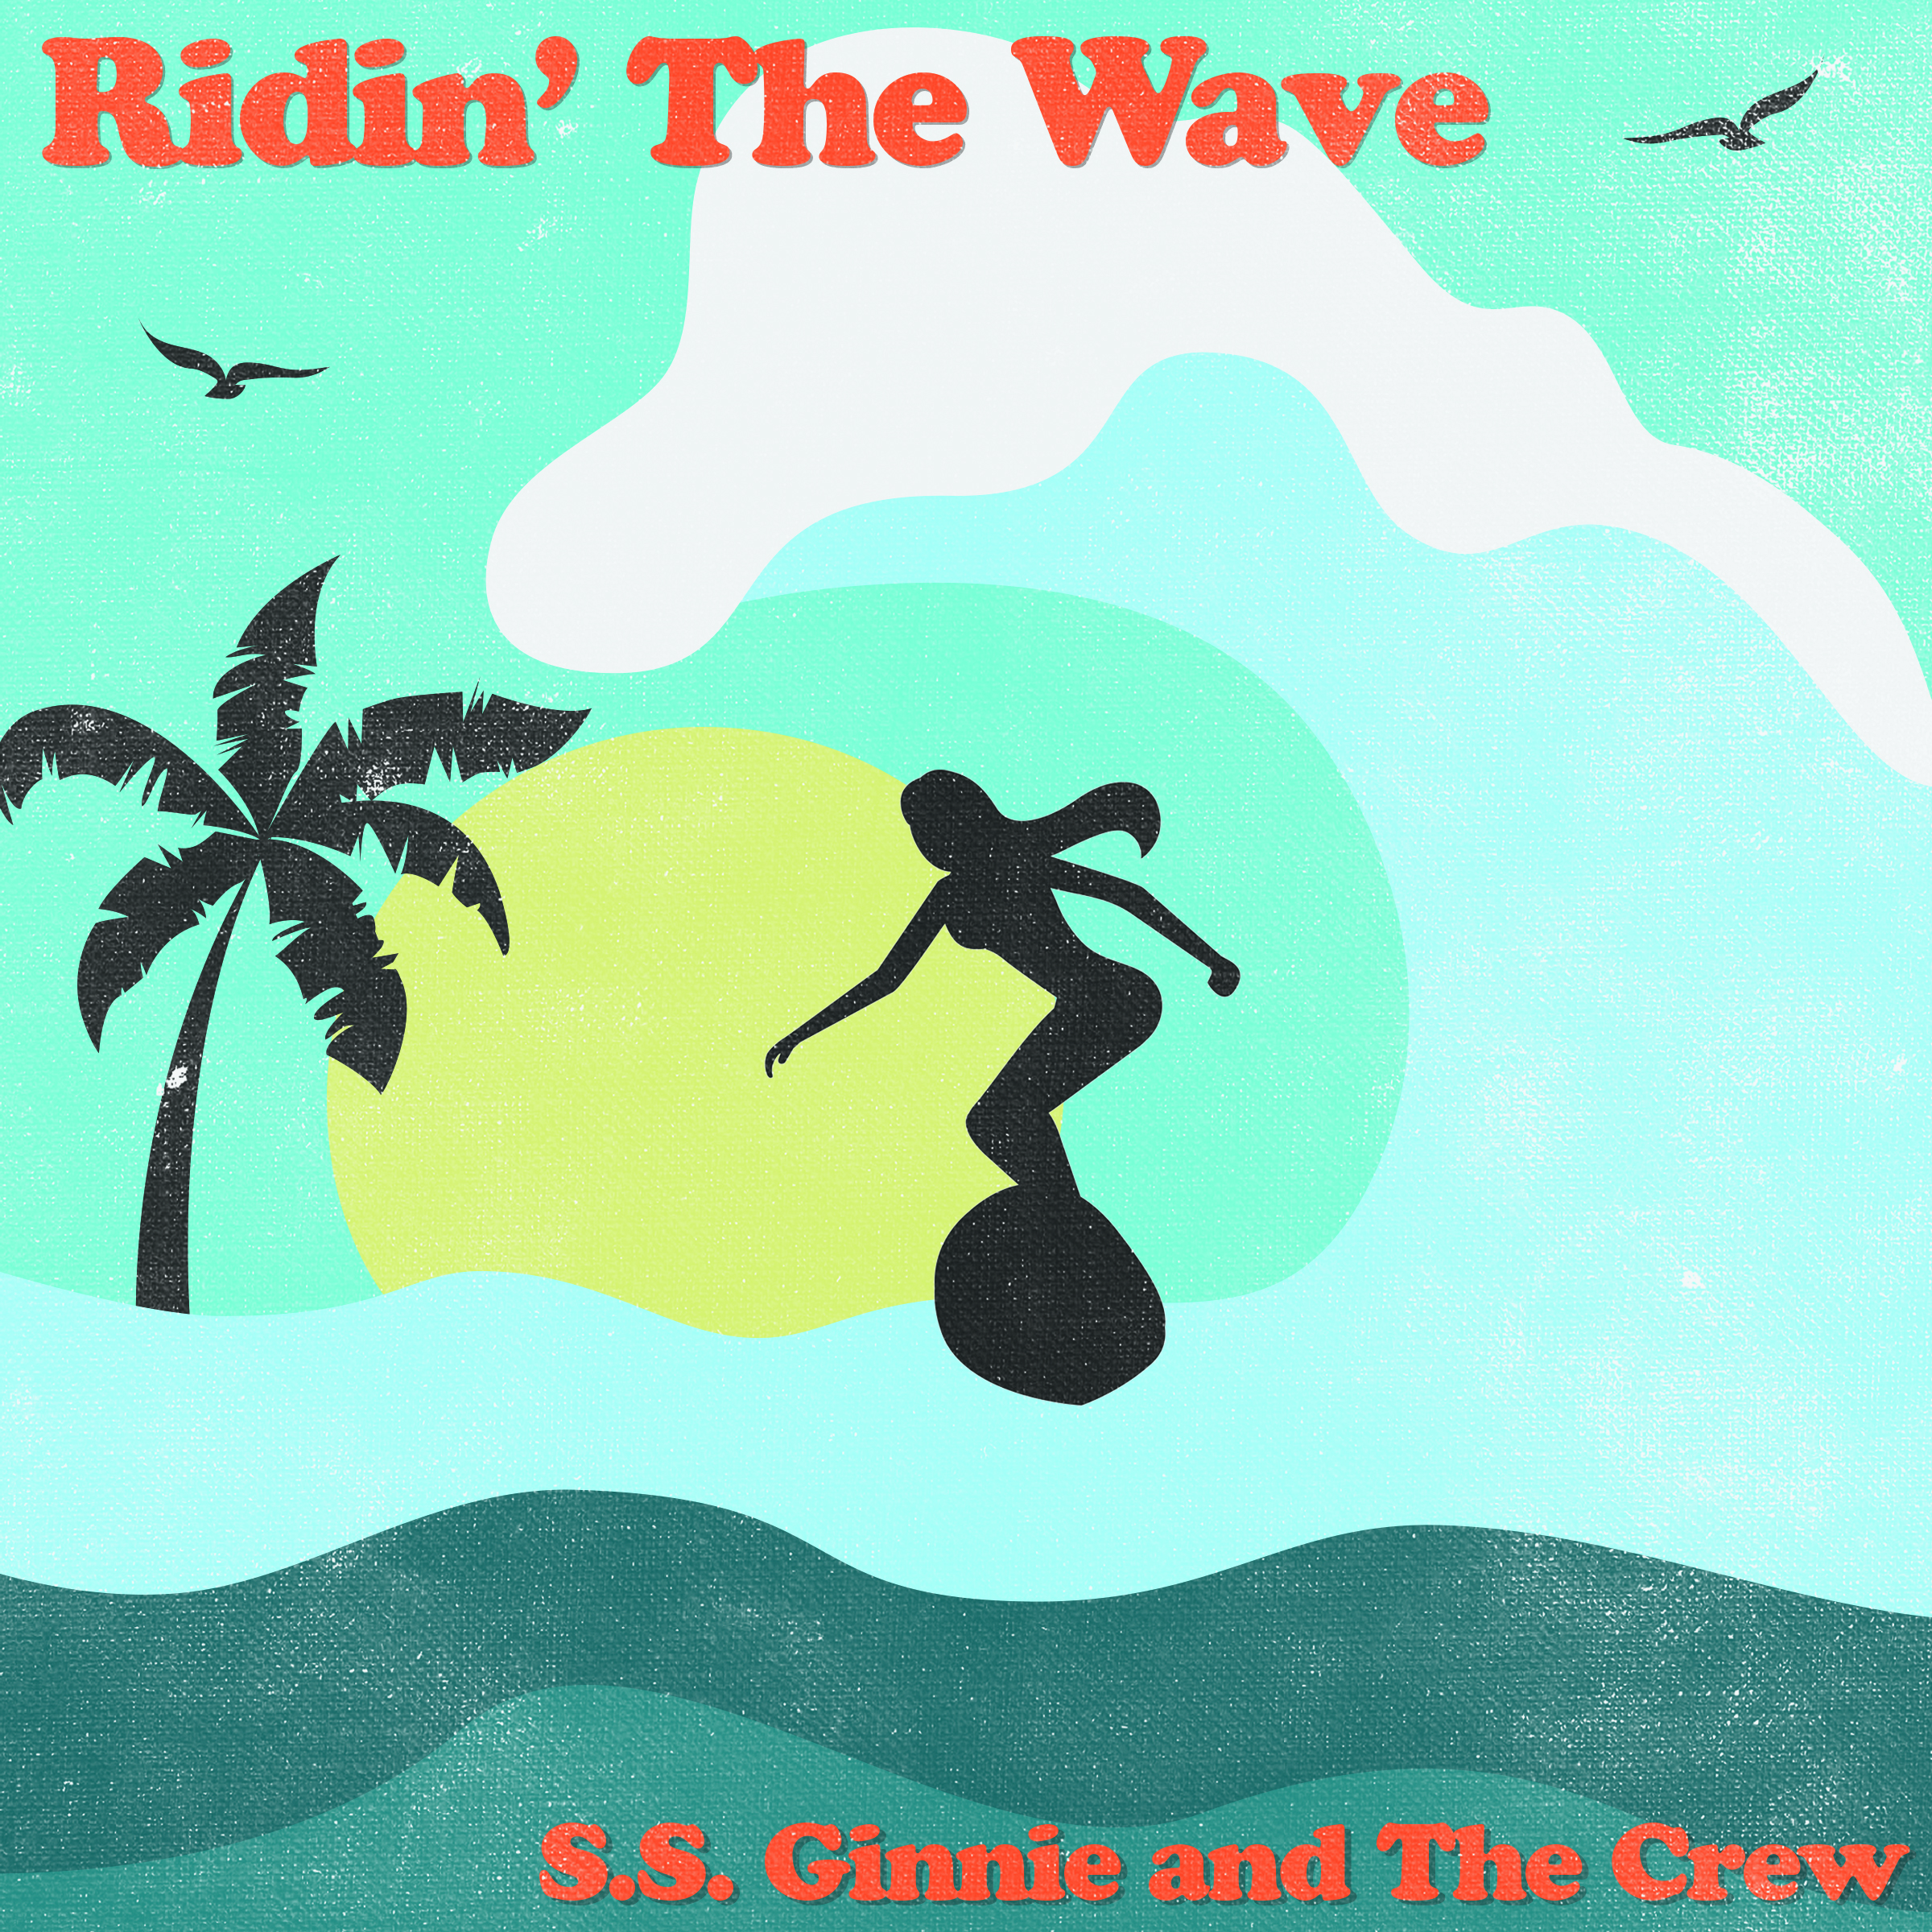 S.S. Ginnie and The Crew - Ridin' the Wave (Official Artwork).jpg